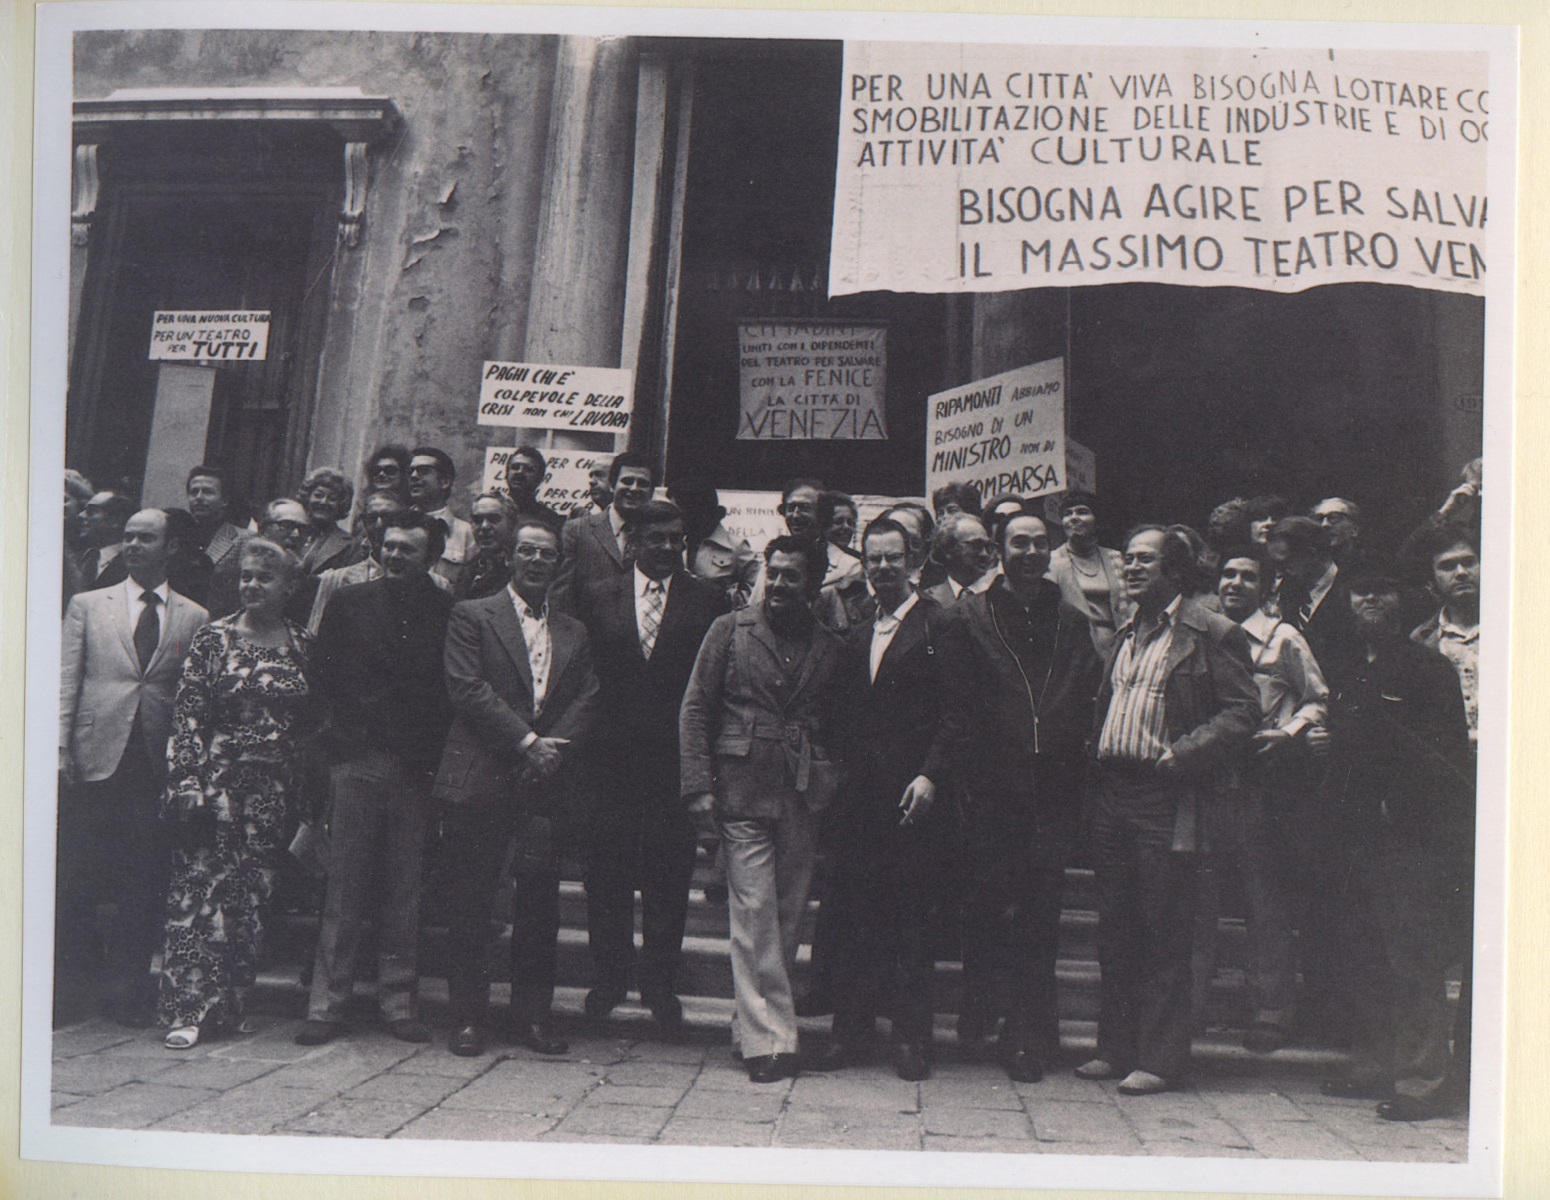 Zubin Mehta, Ernest Fleischmann, and members of the LA Phil join striking orchestra musicians in Venice in 1974.